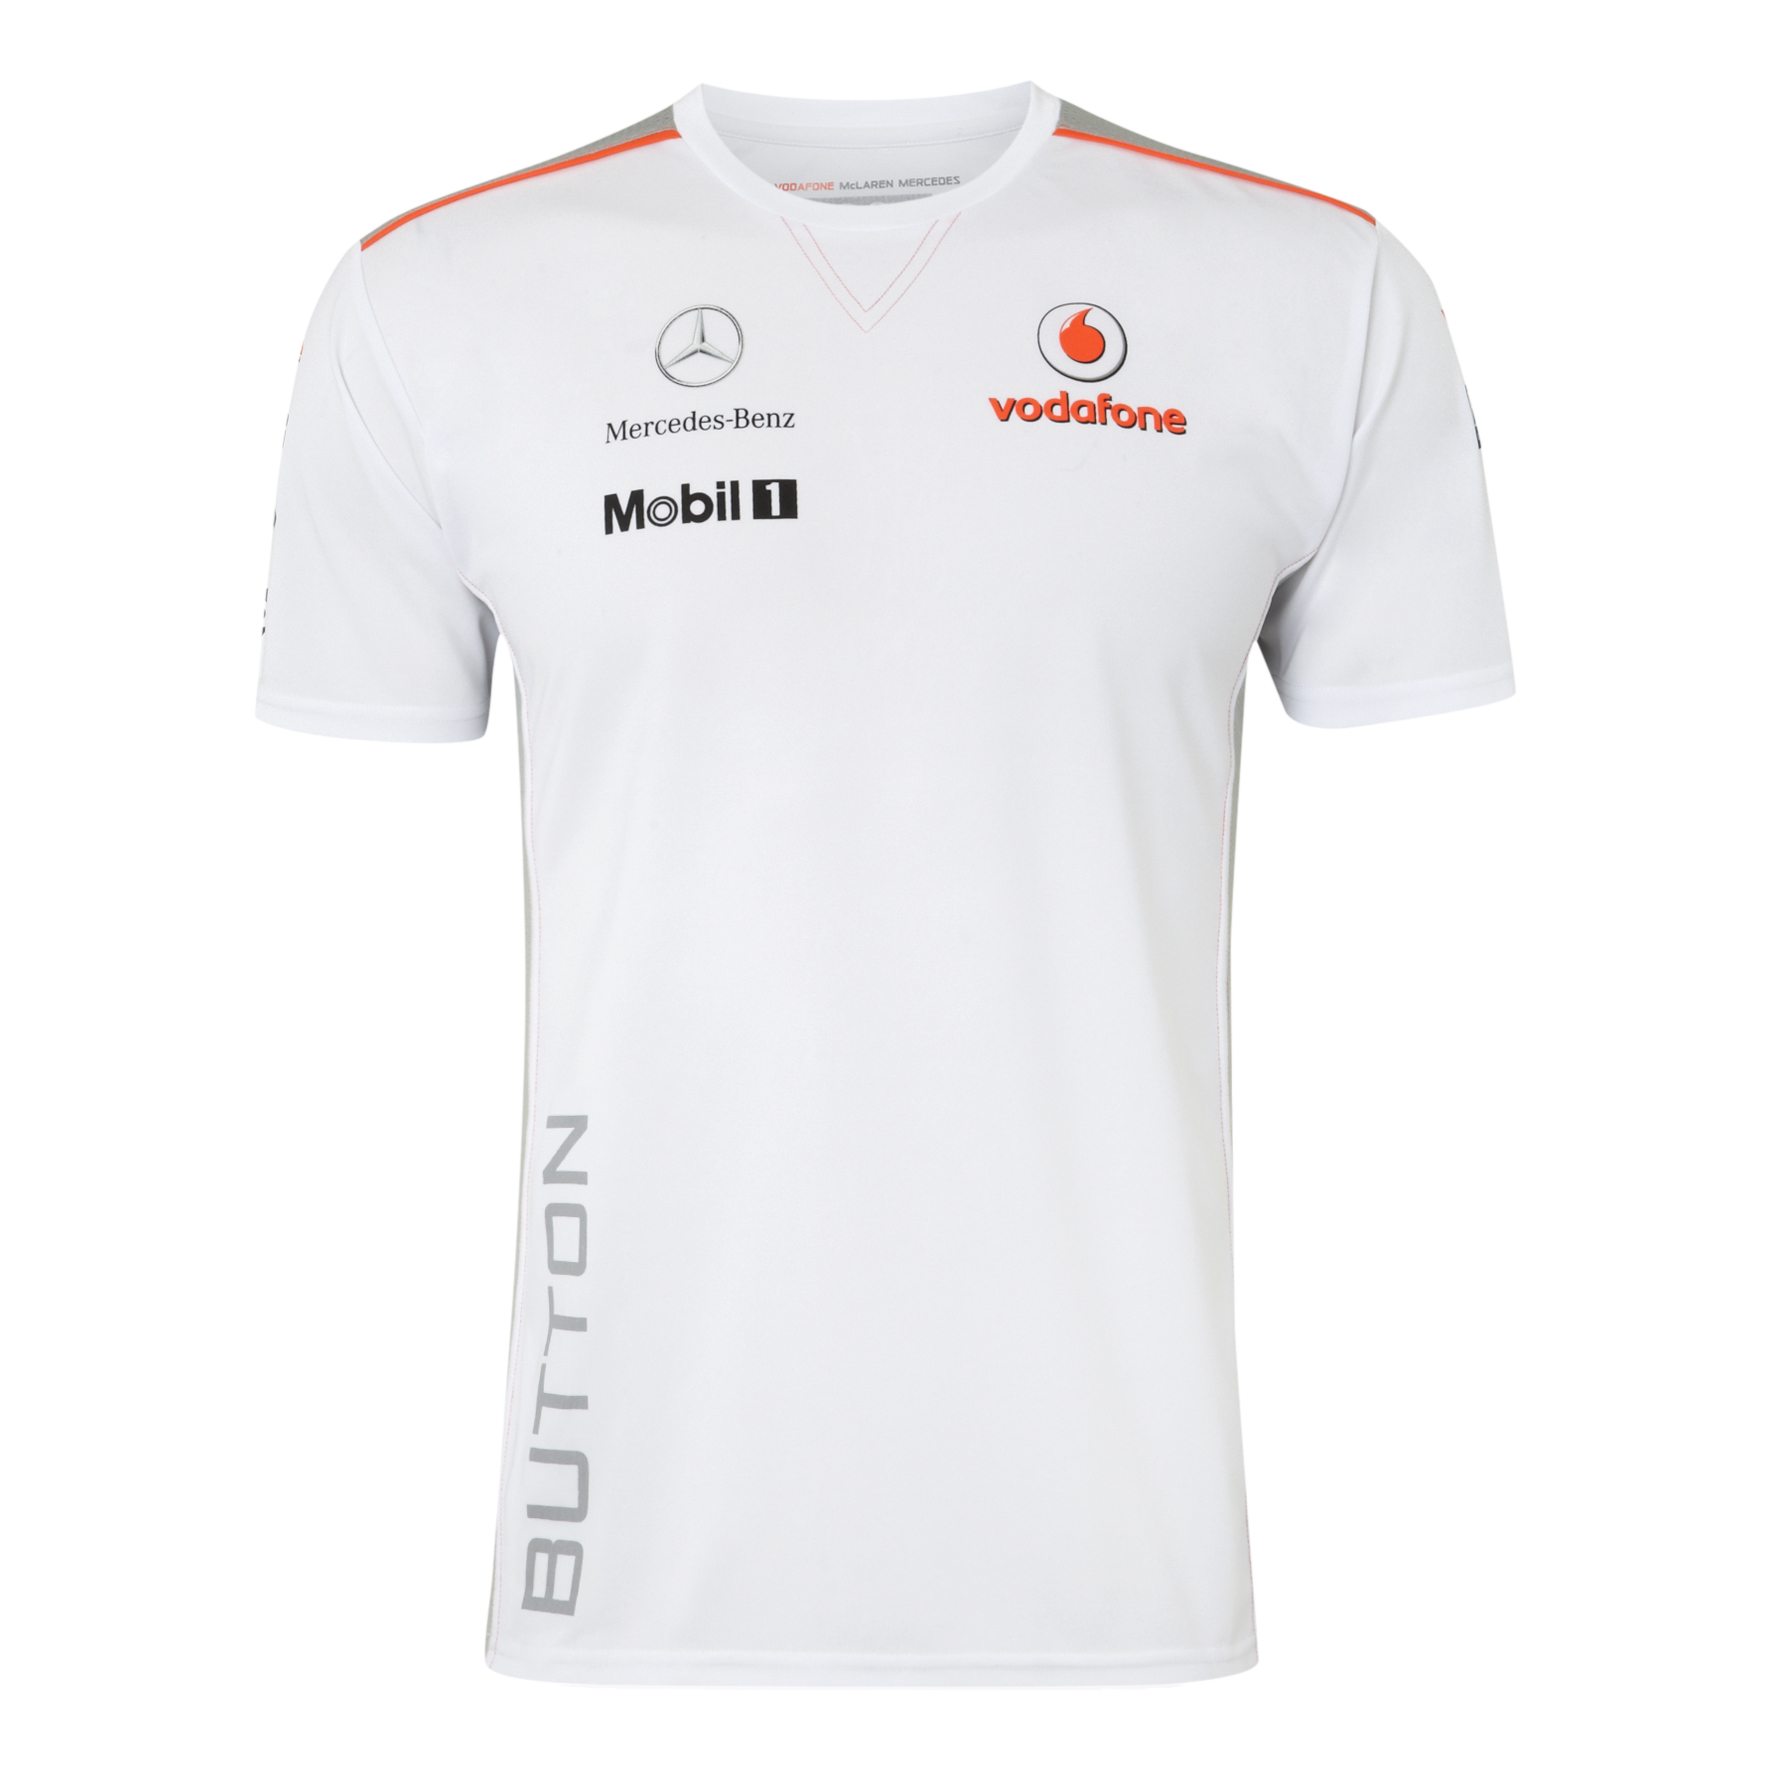 Vodafone McLaren Mercedes 2013 Button  T-Shirt